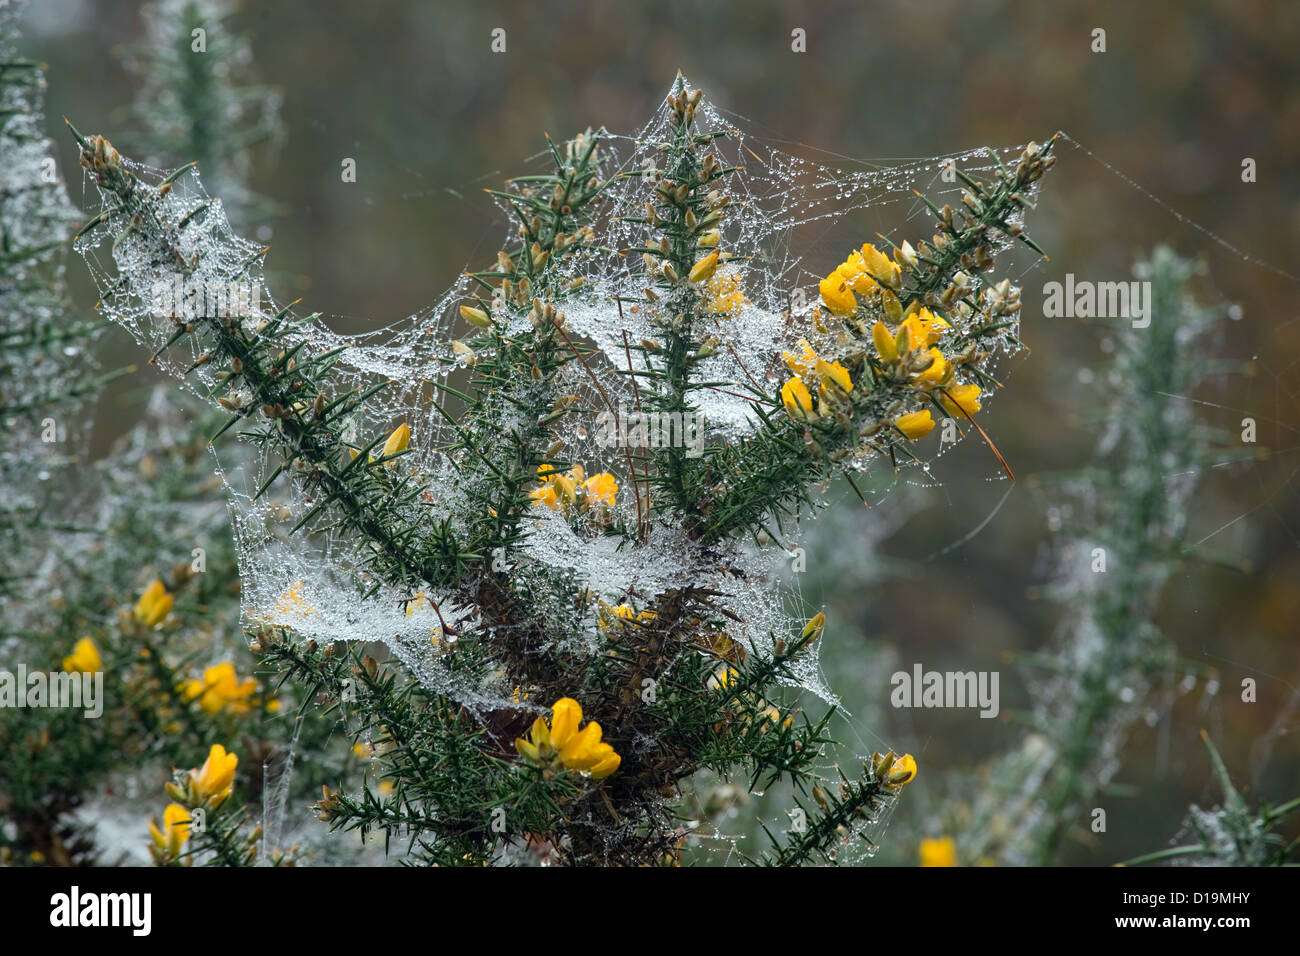 Gorse Ulex europaeus blooming in November & spiders webs - Stock Image